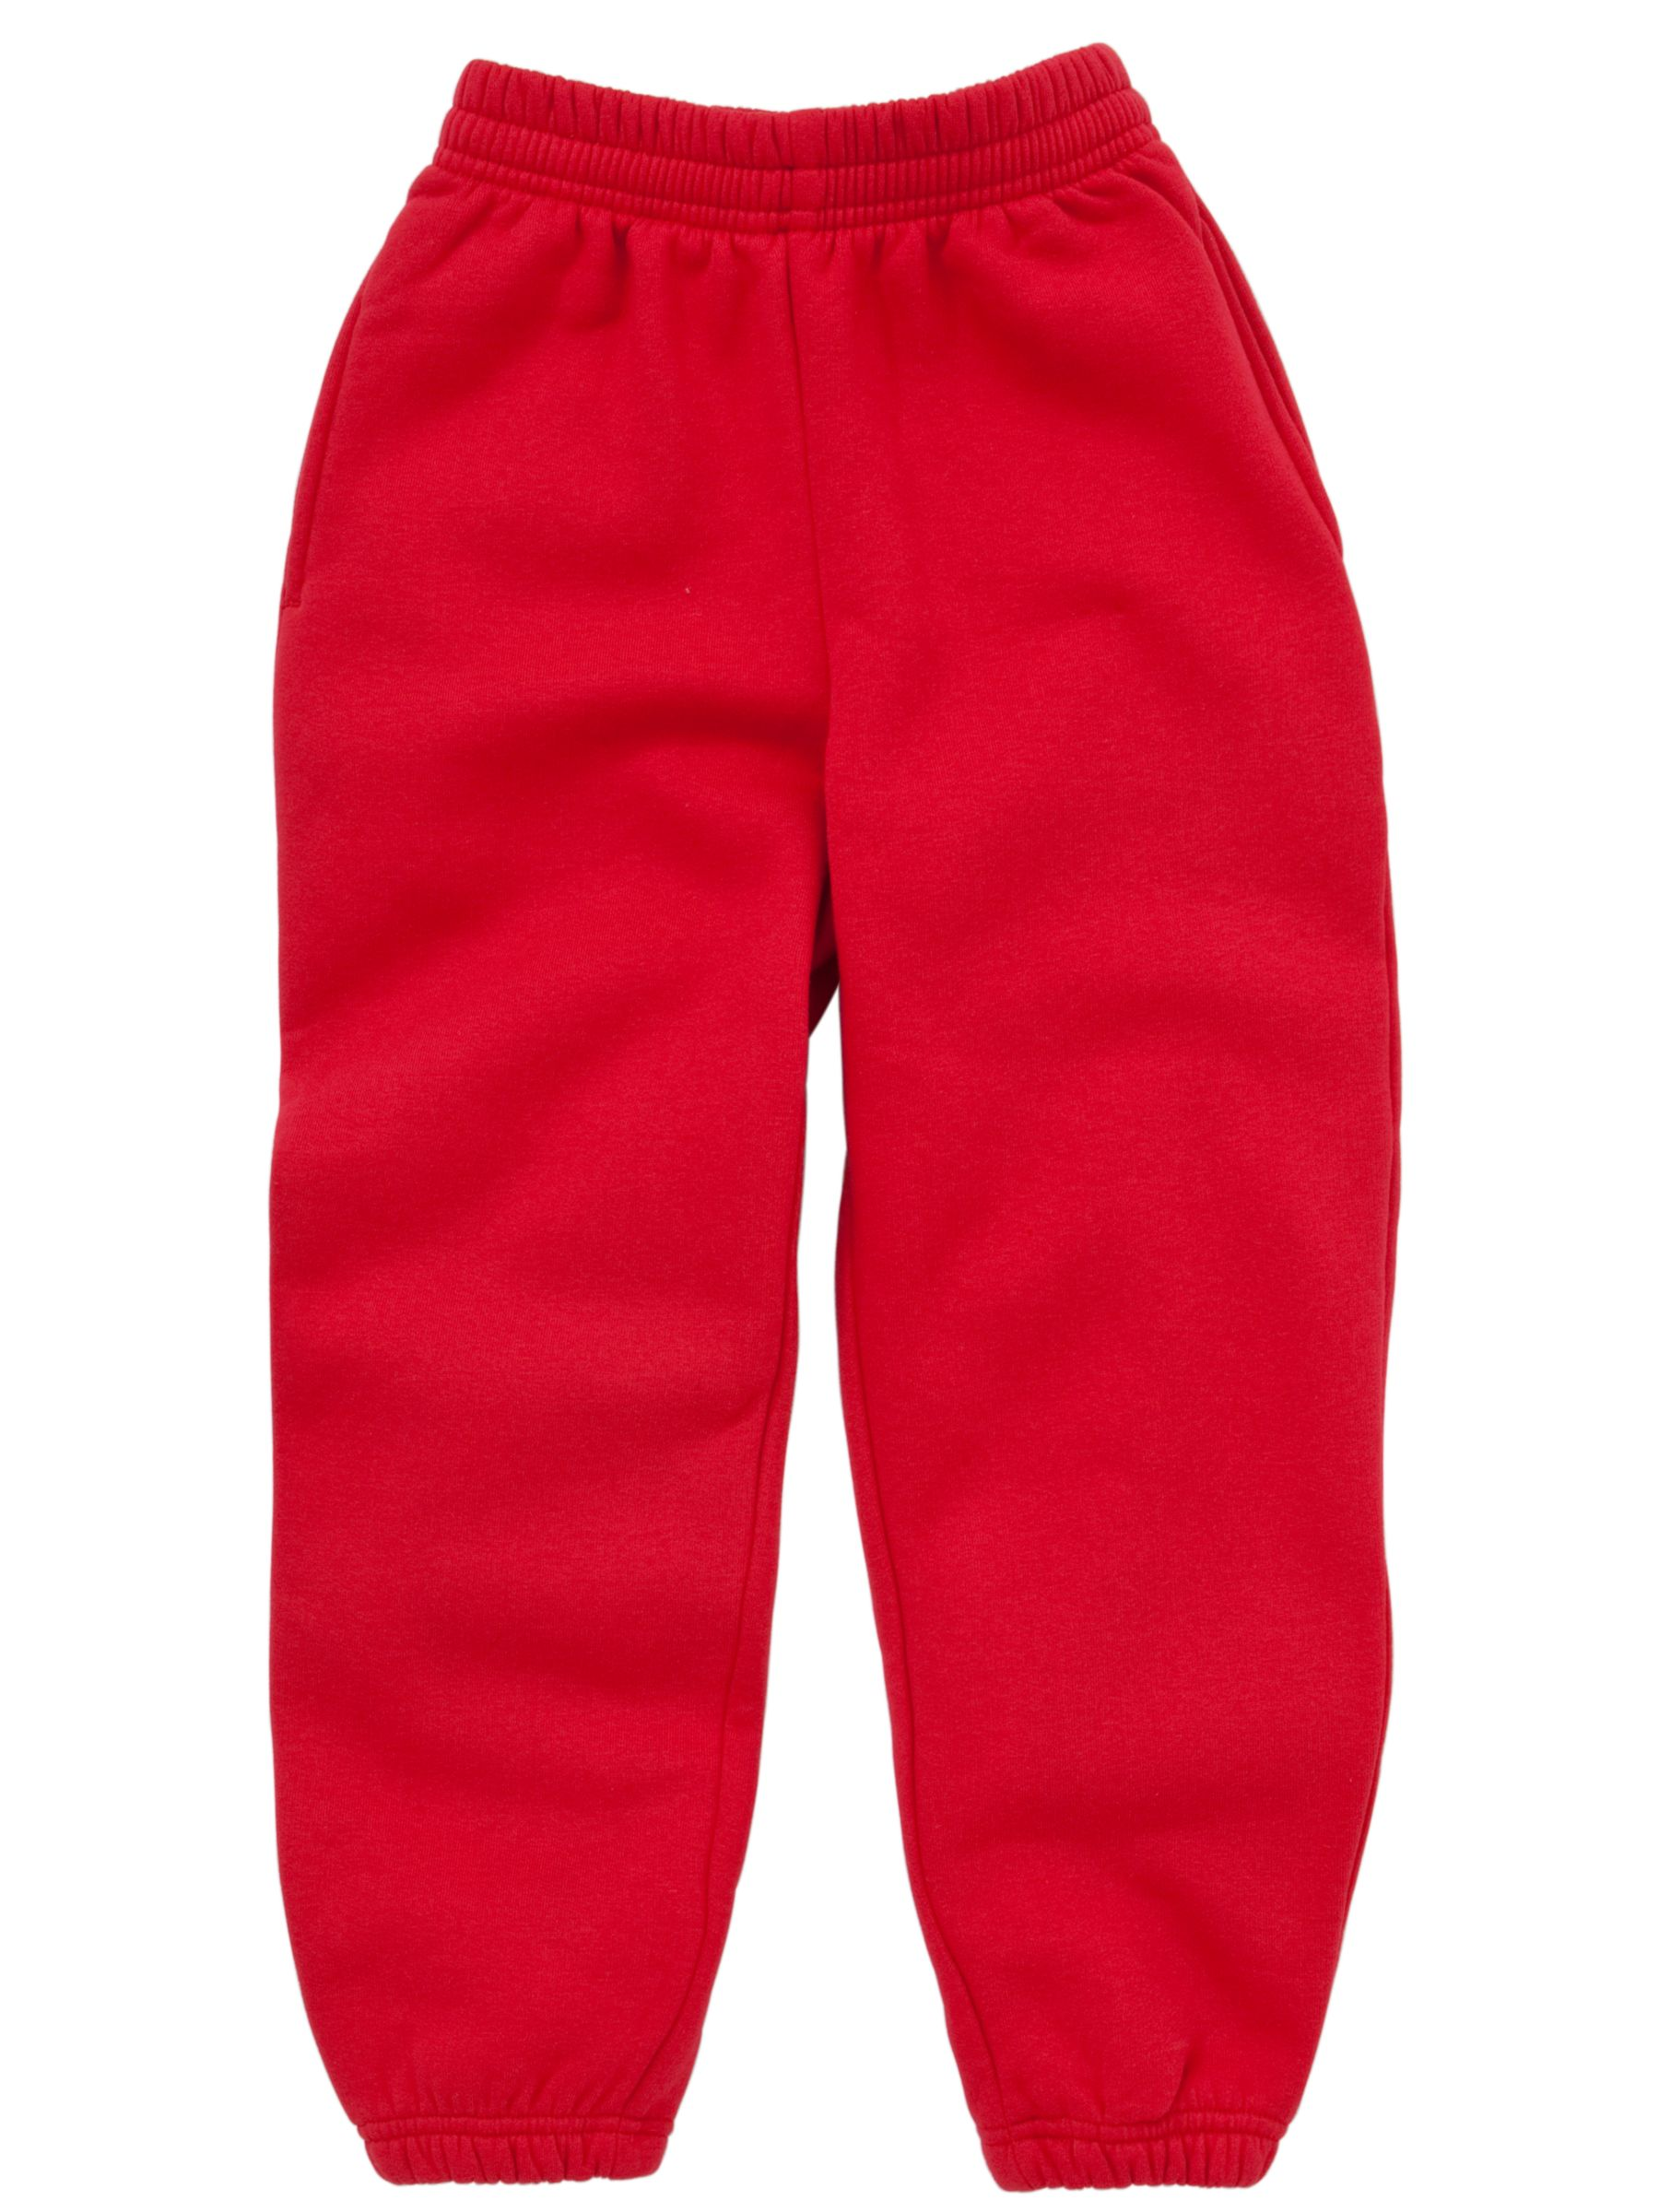 School Unisex Tracksuit Bottoms, Red at John Lewis & Partners School Unisex Tracksuit Bottoms, Red - 웹